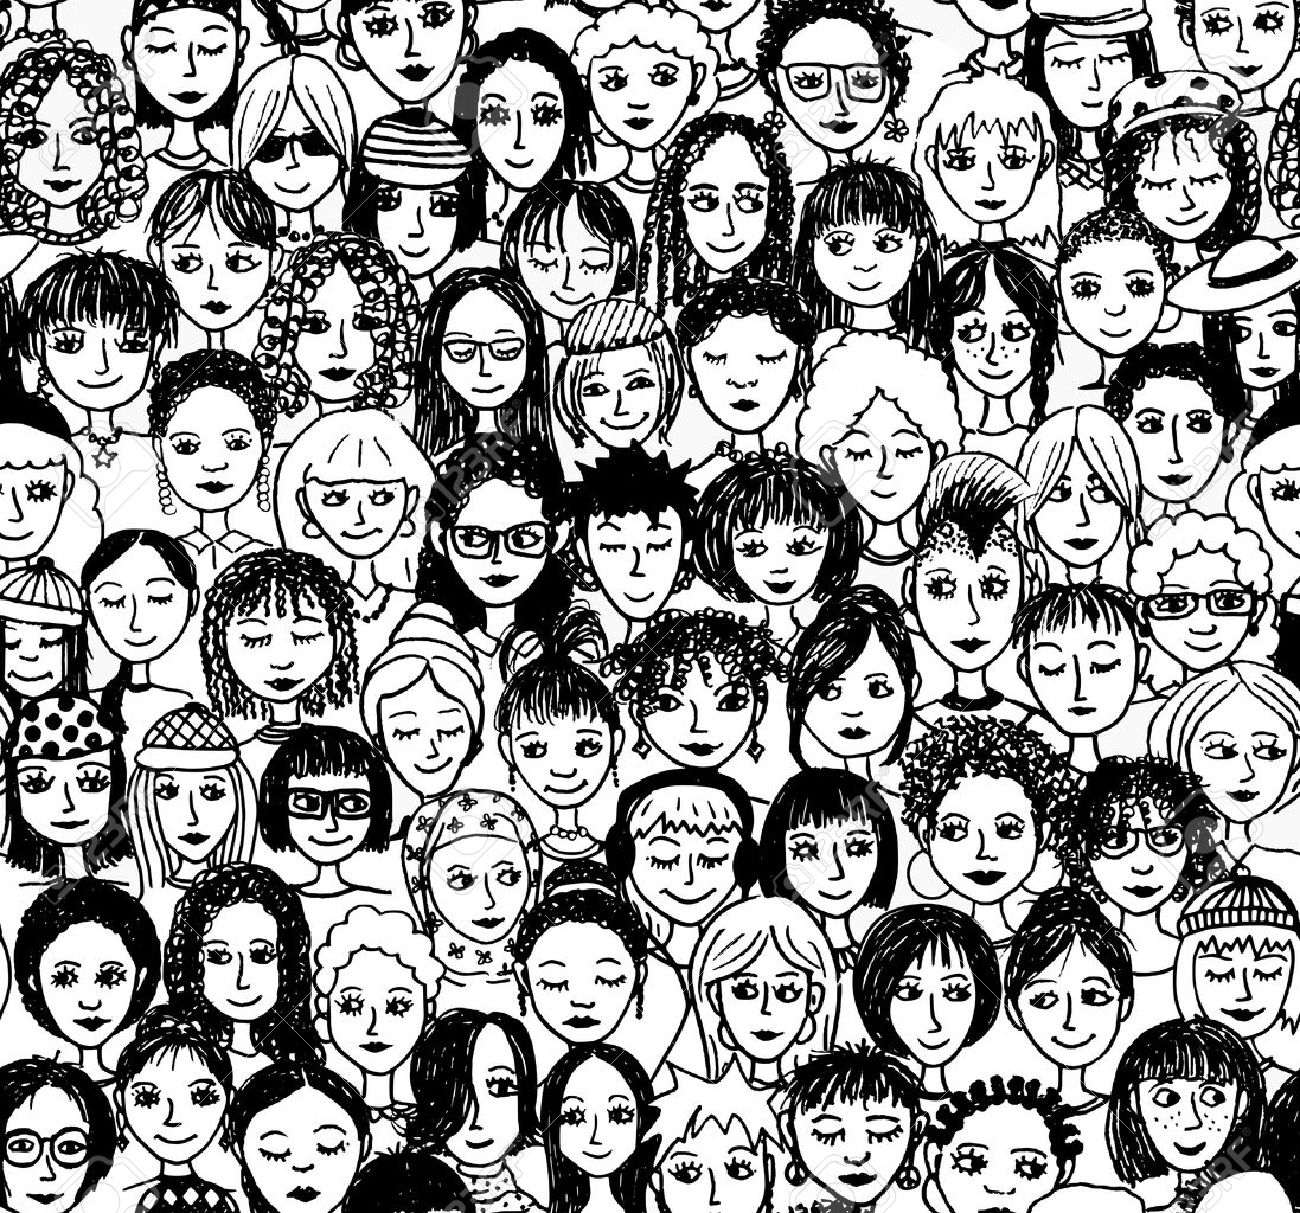 Women - hand drawn seamless pattern of a crowd of different women from diverse ethnic backgrounds - 48042869